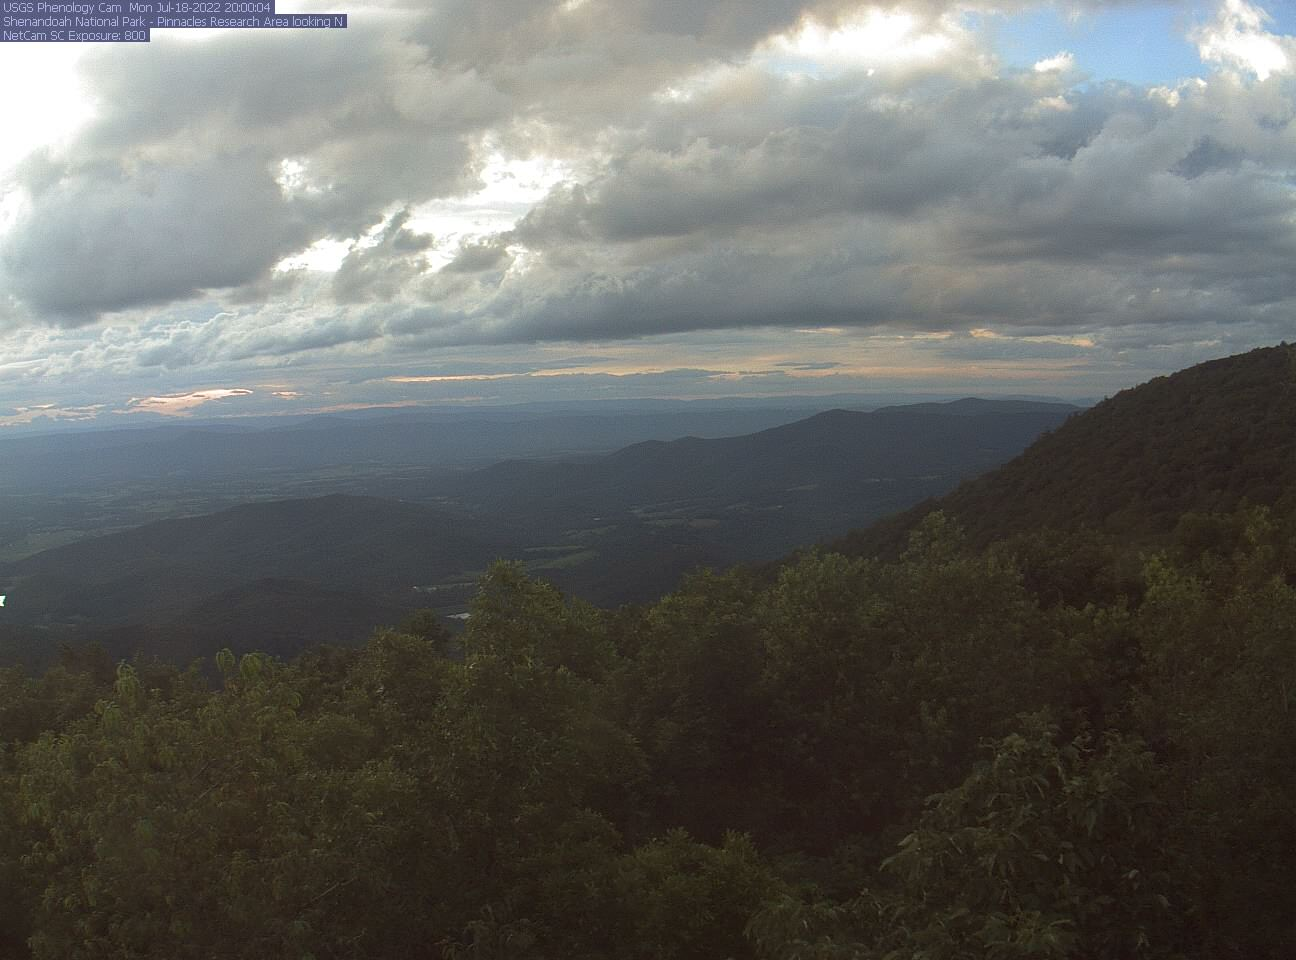 Mountain View webcam showing                                  Shenandoah Valley